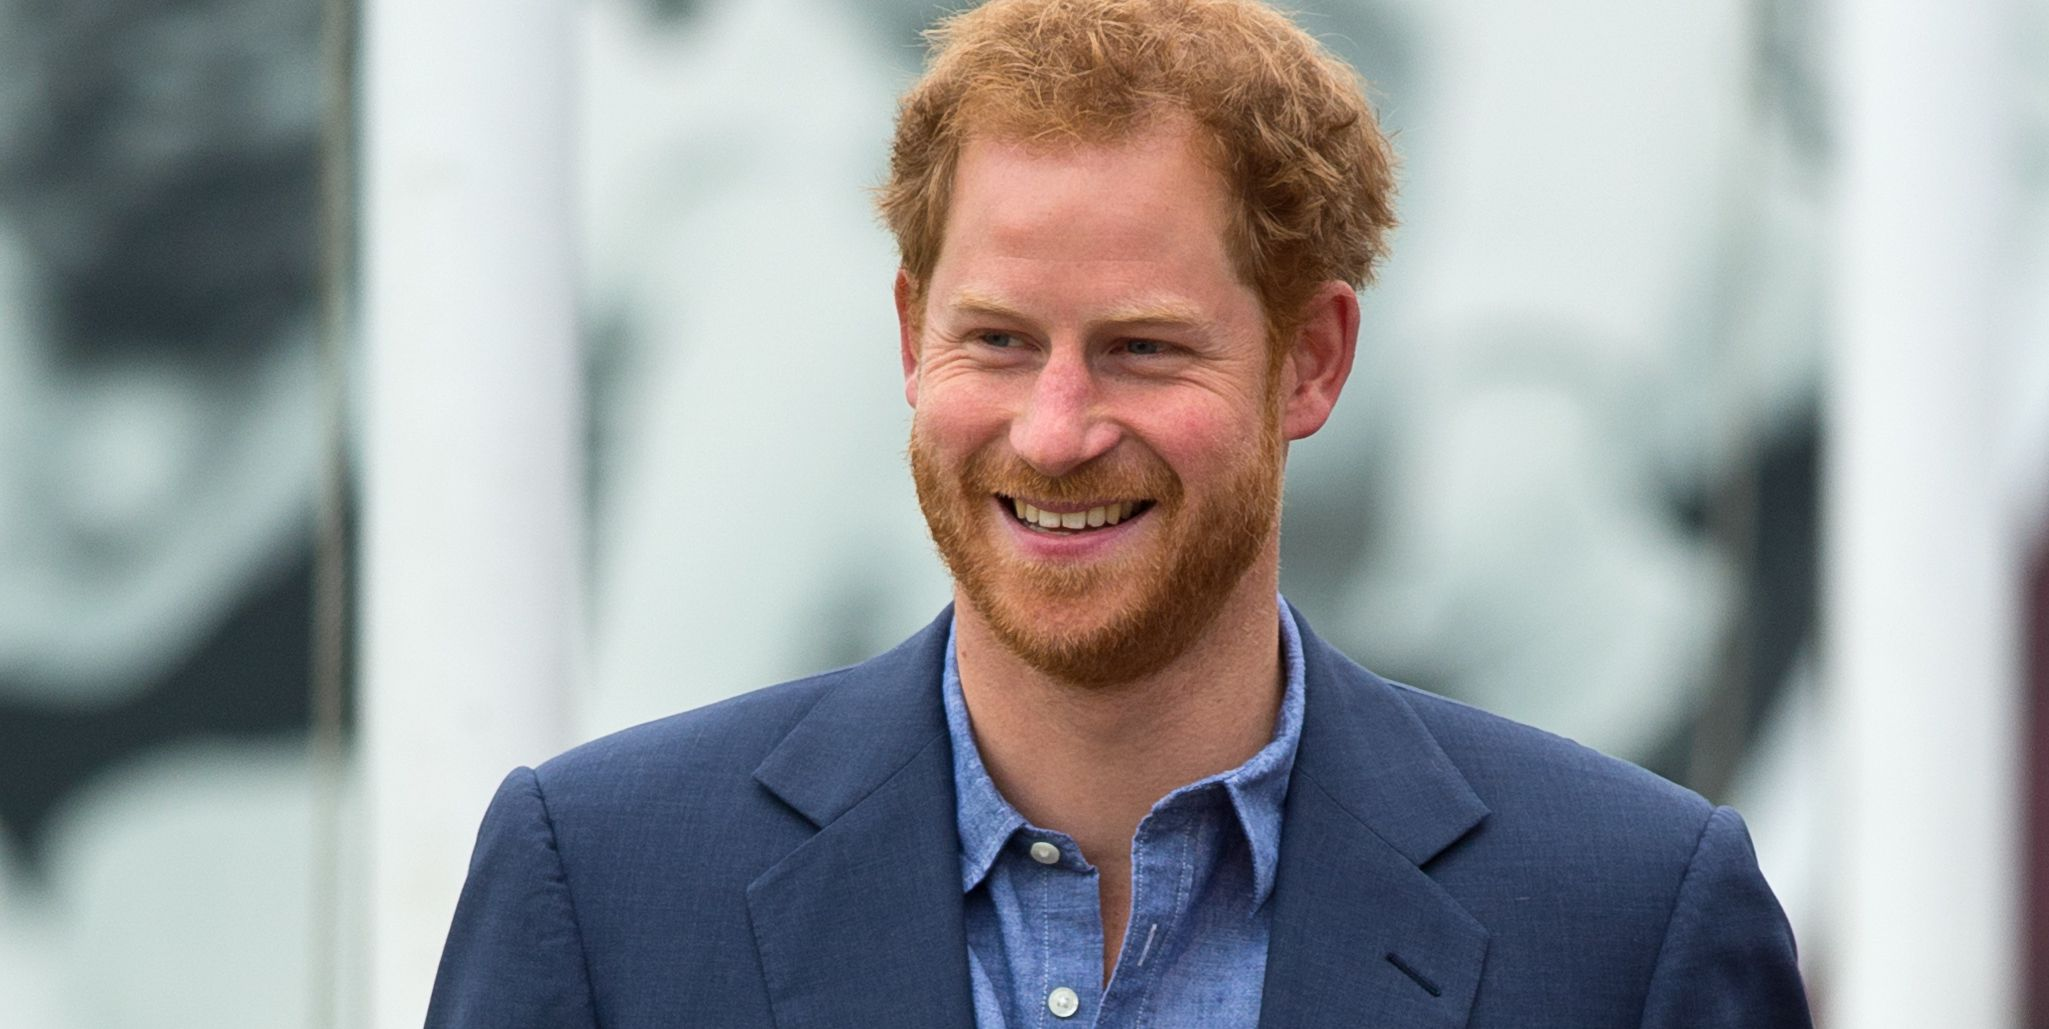 Prince Harry Attended a Musical Last Night and Reminded Everyone How Funny He Is